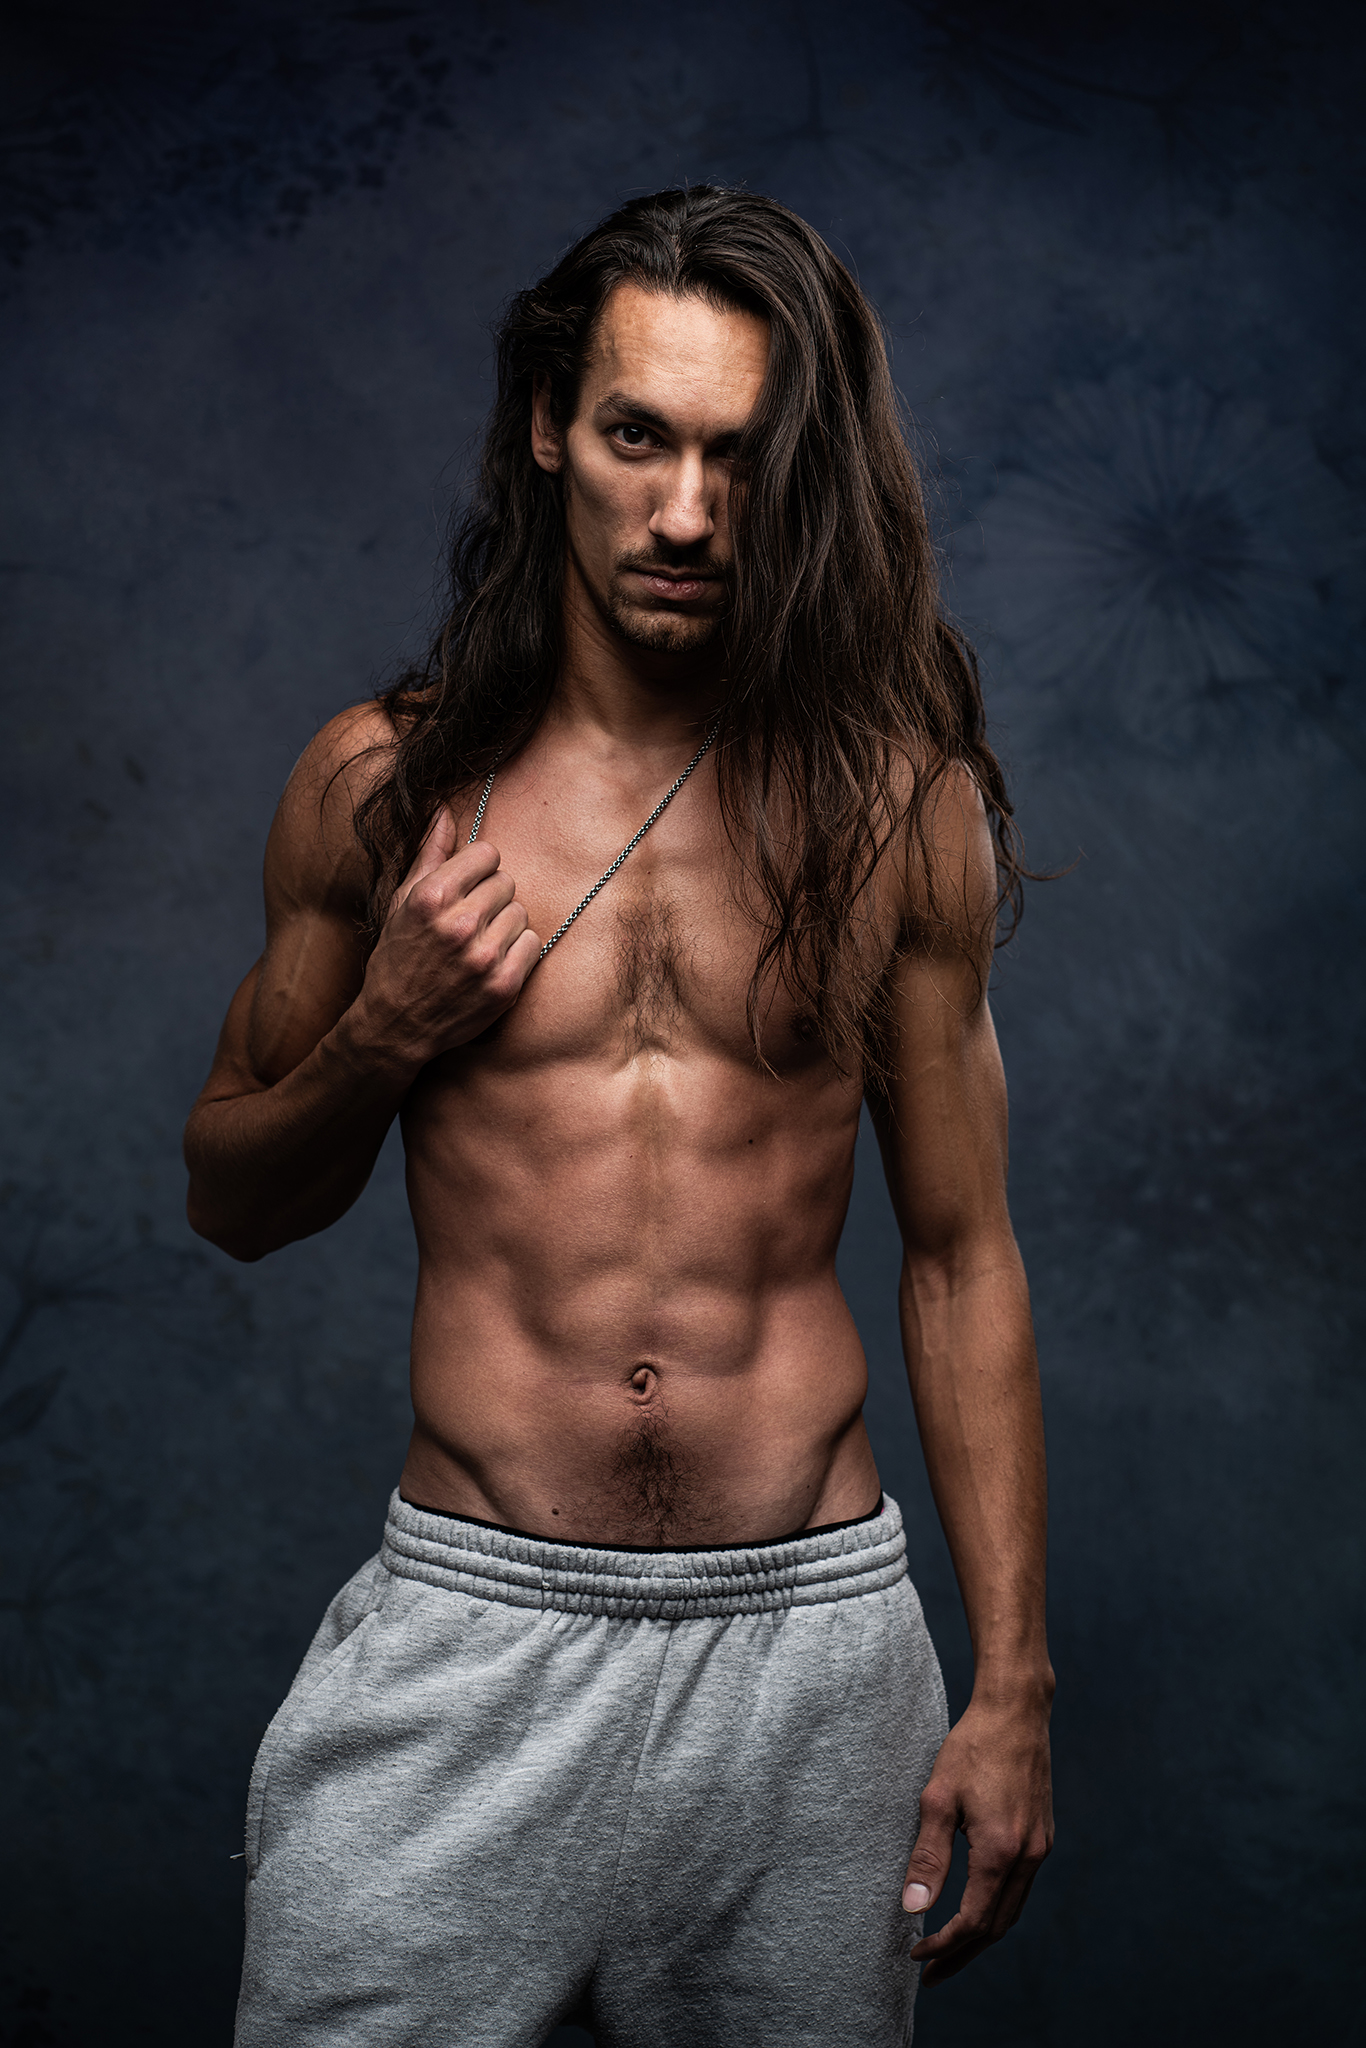 male model portfolio fitness model topless in studio moody lighting by Portrait photographer Preston